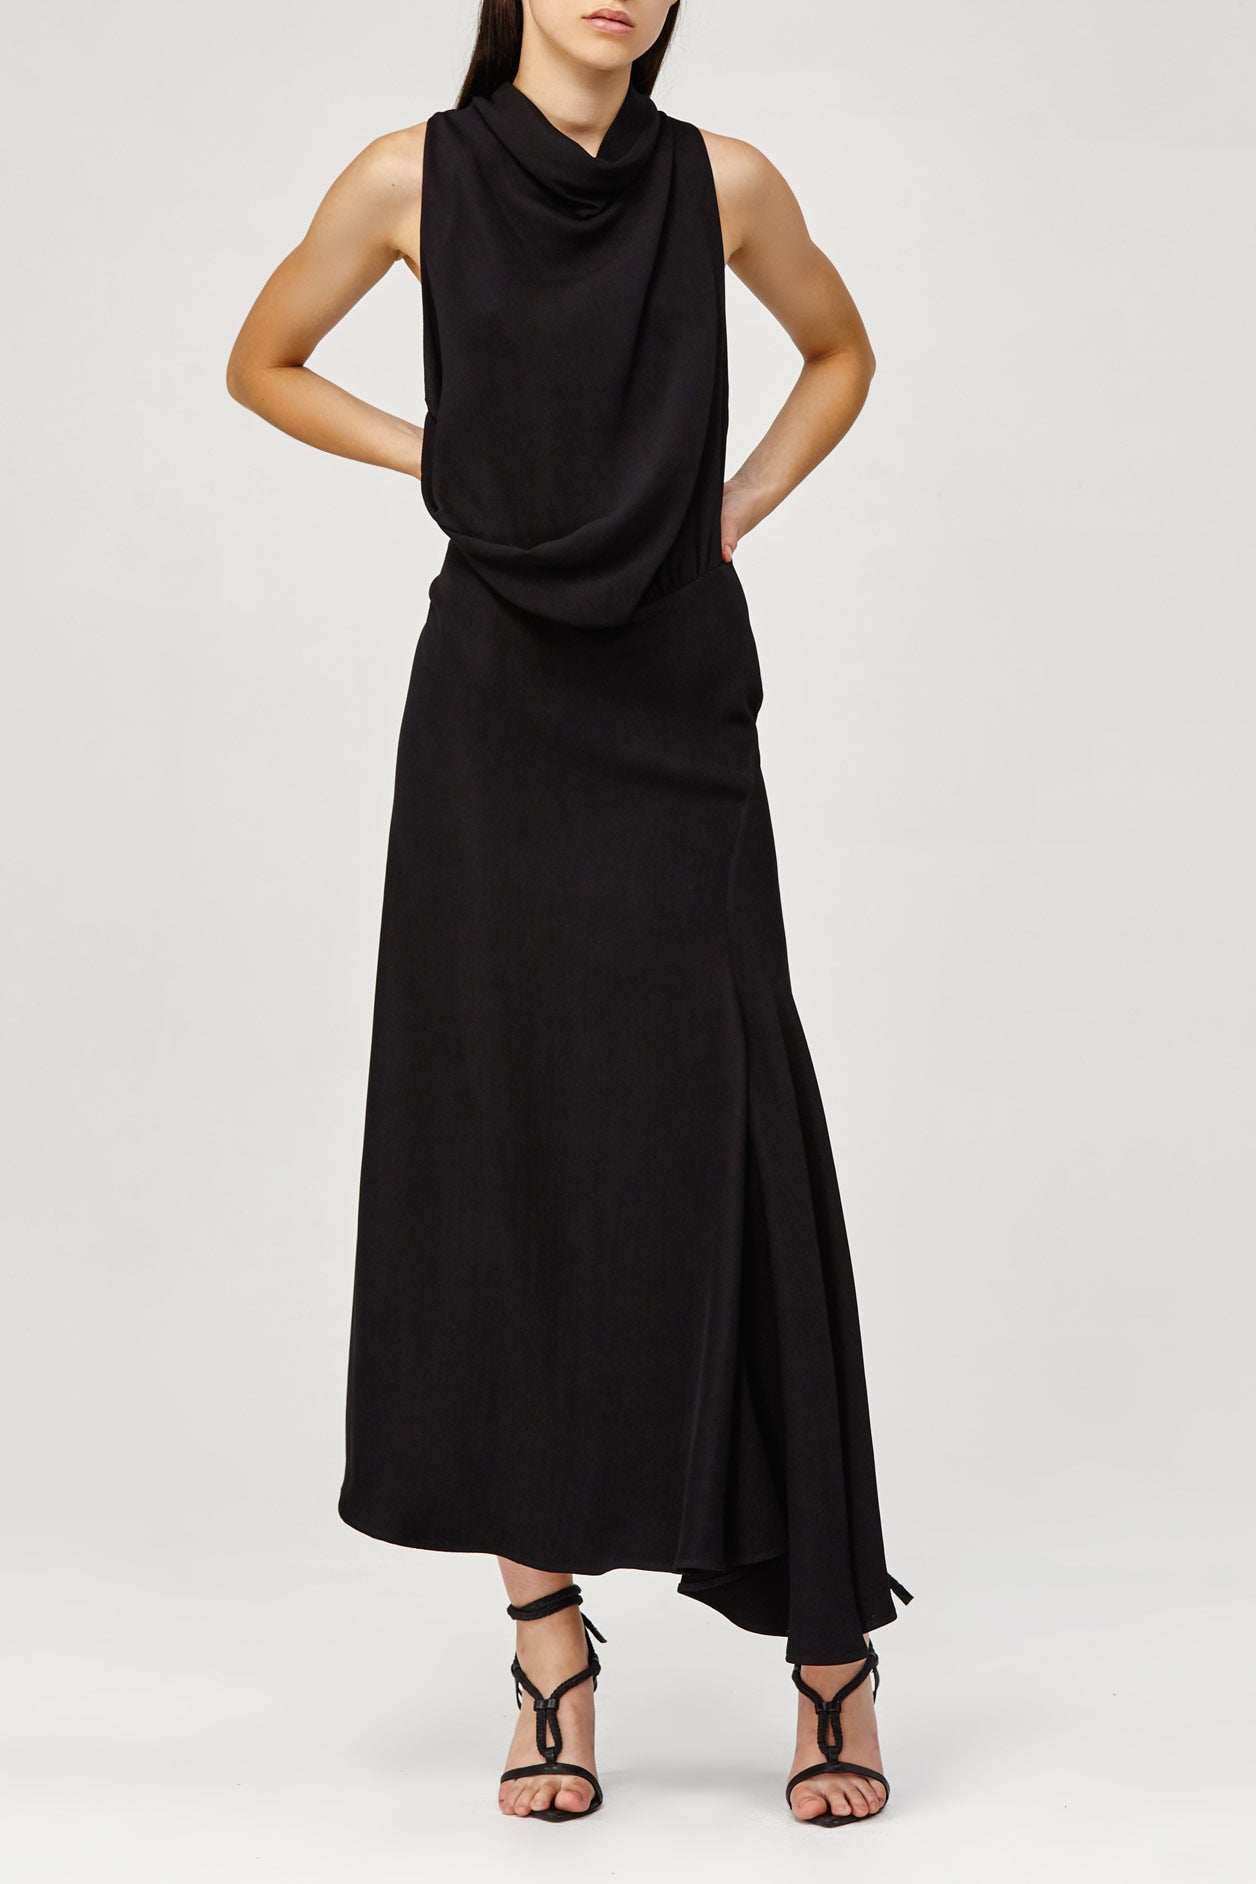 Acler Indiannah Black Dress